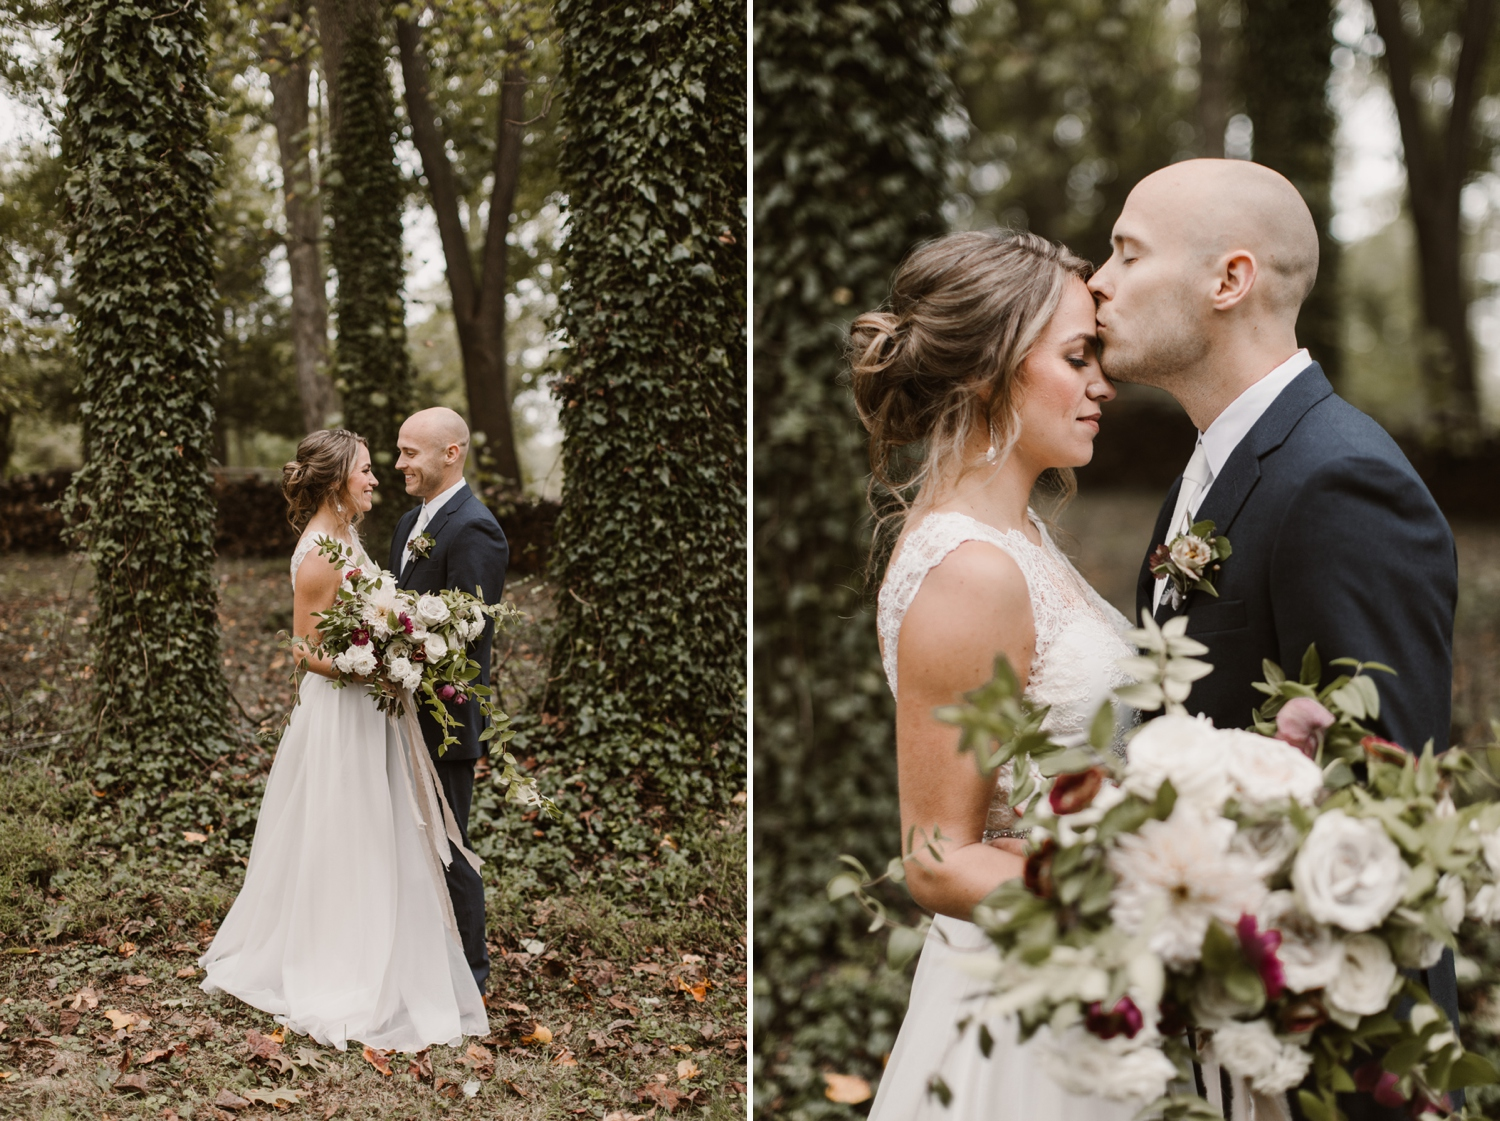 Baltimore wedding photographer outdoor Maryland wedding ceremony   forest earthy Annapolis wedding   outdoors bride and groom portraits